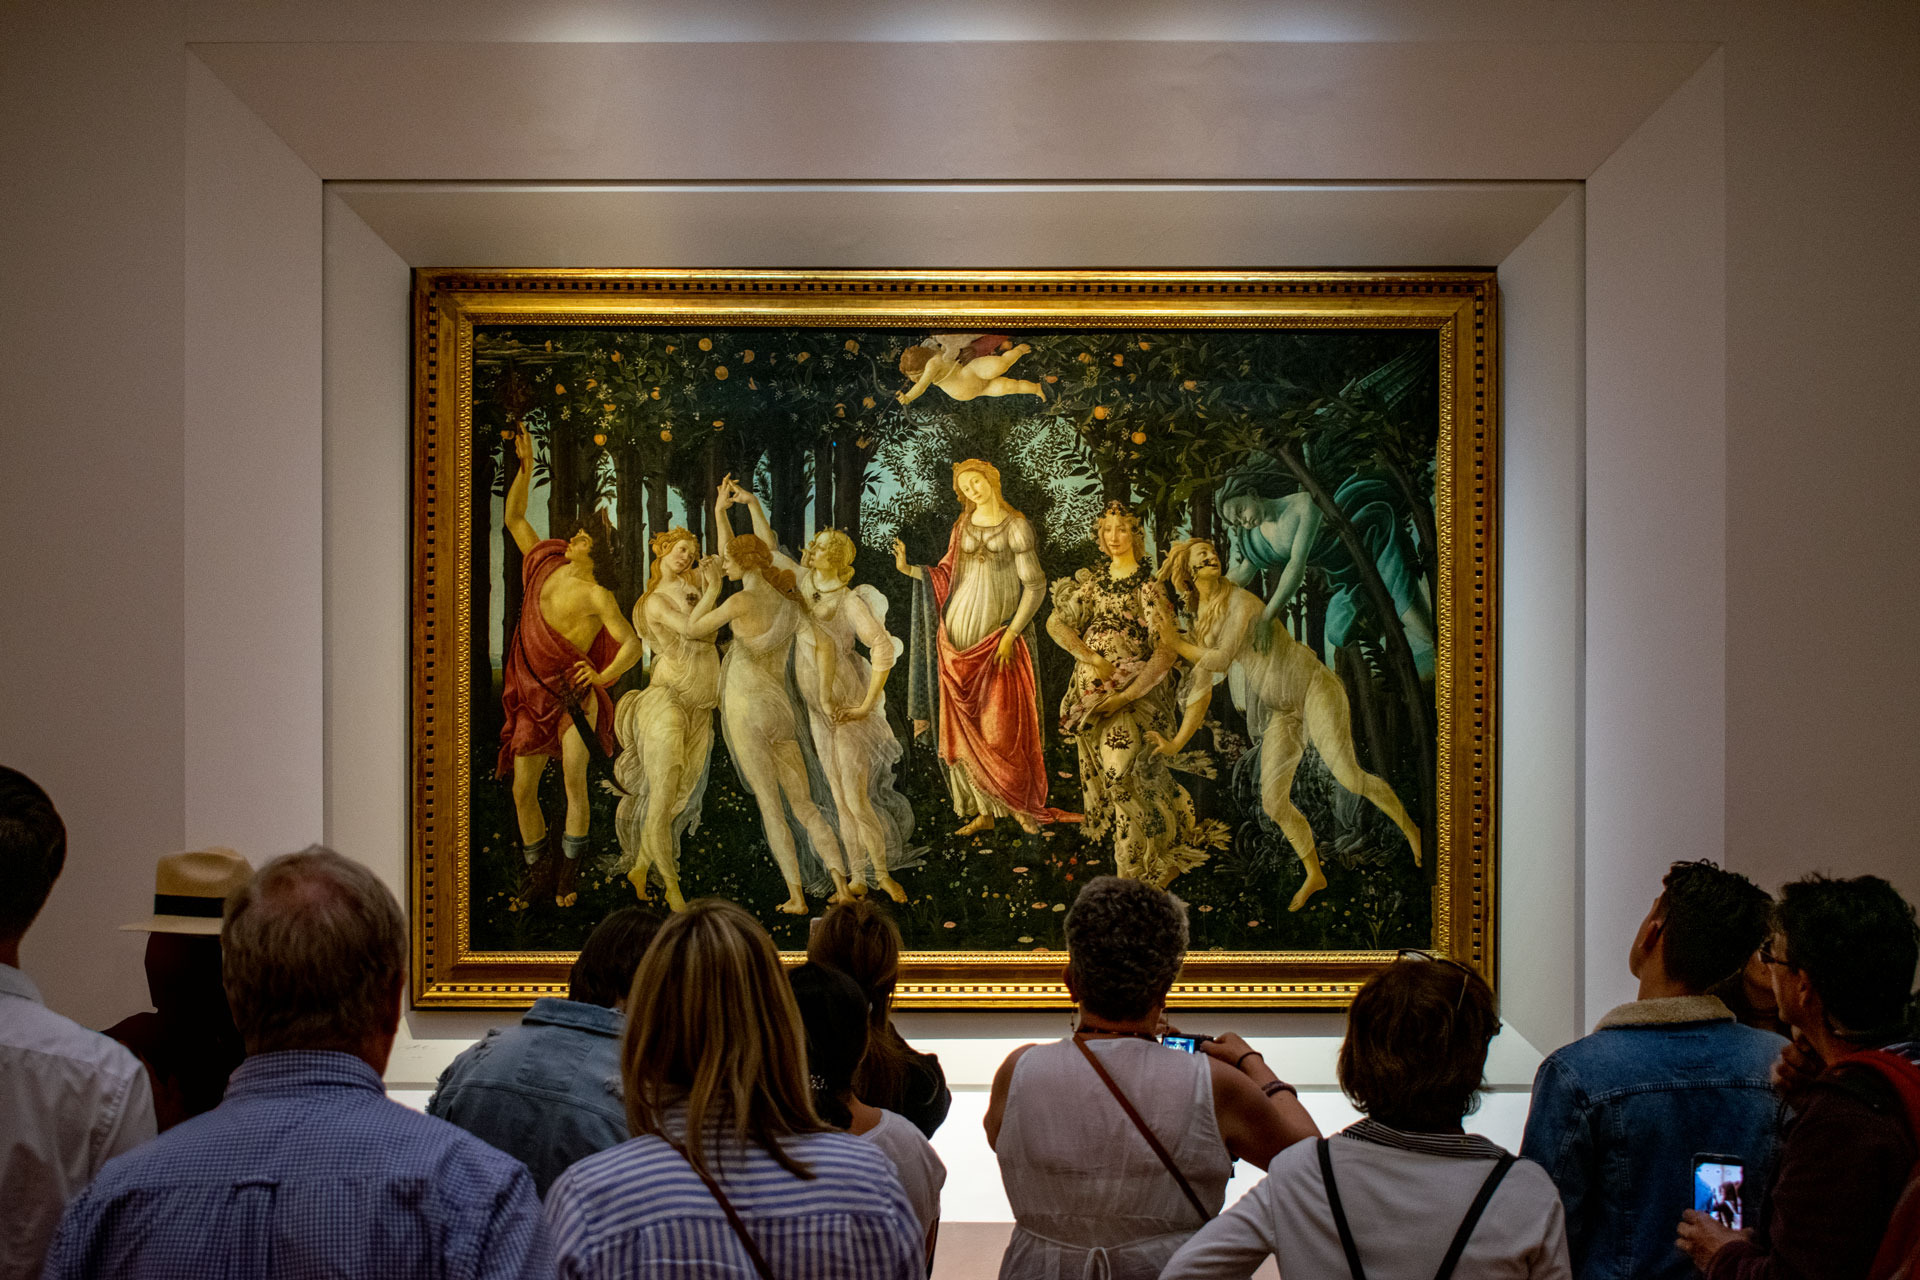 Renaissance Art 101: 3 Must-Do Tours For Art-Lovers in Tuscany